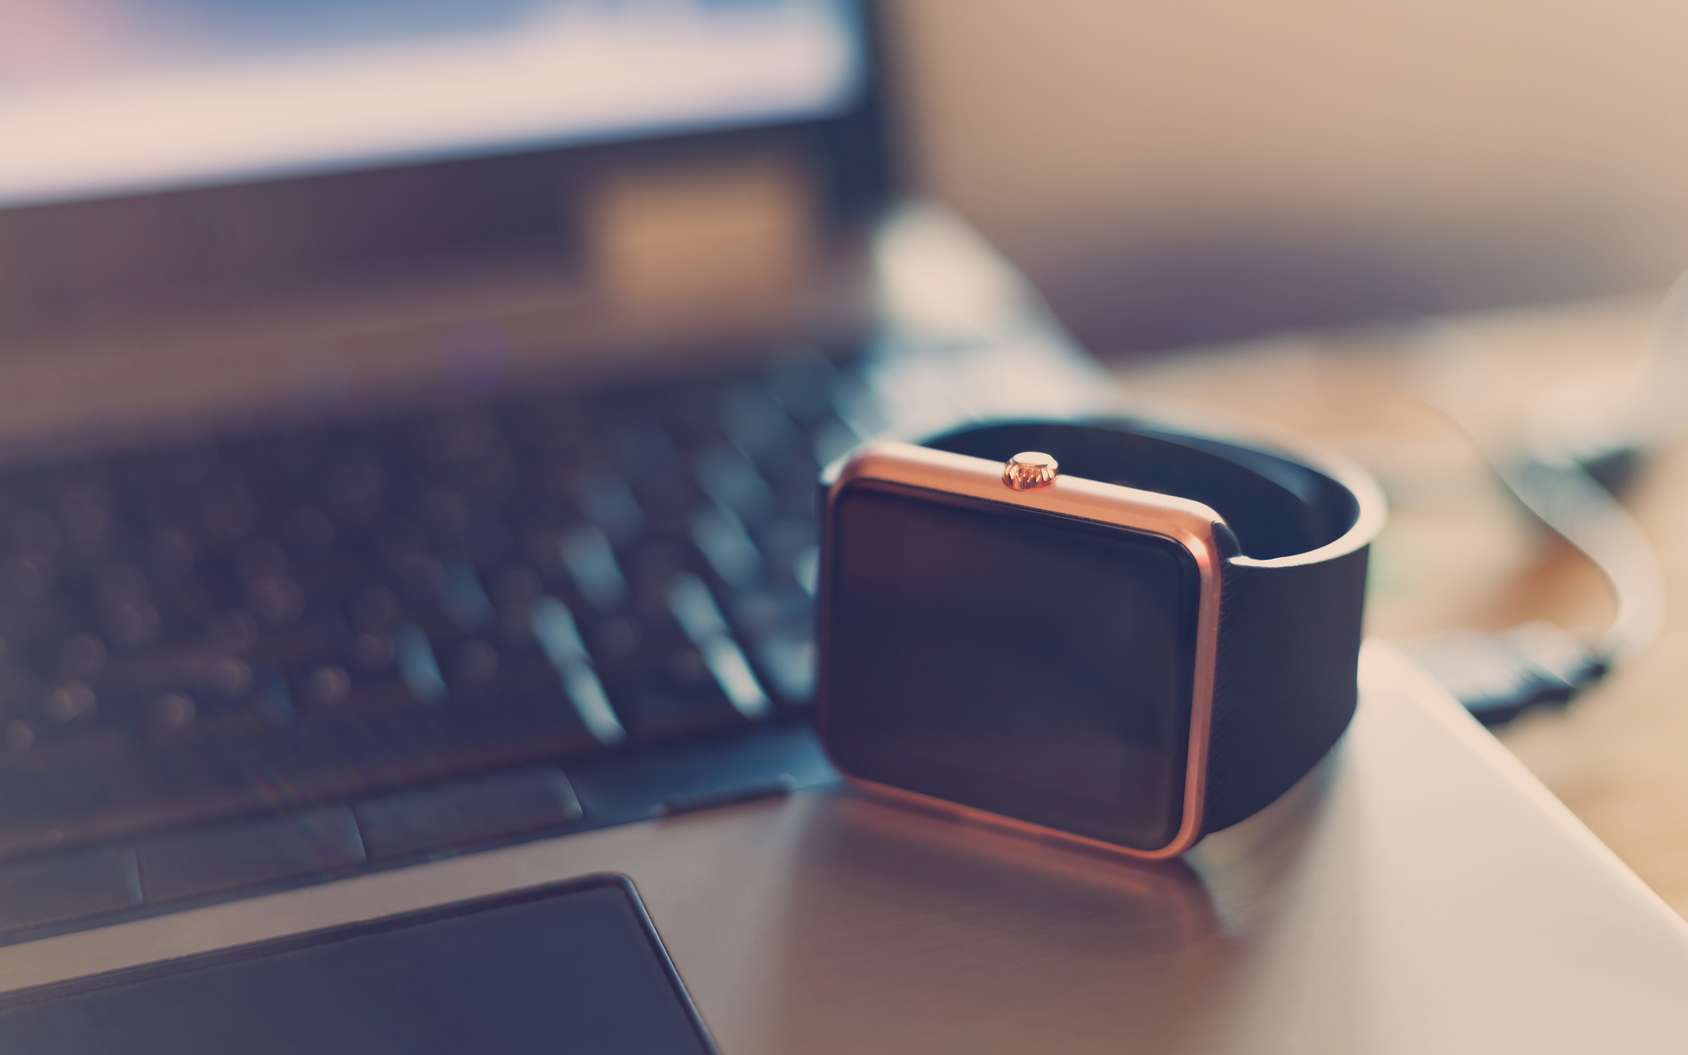 Déverrouiller son Mac avec son Apple Watch, c'est possible. © hurricanehank, fotolia